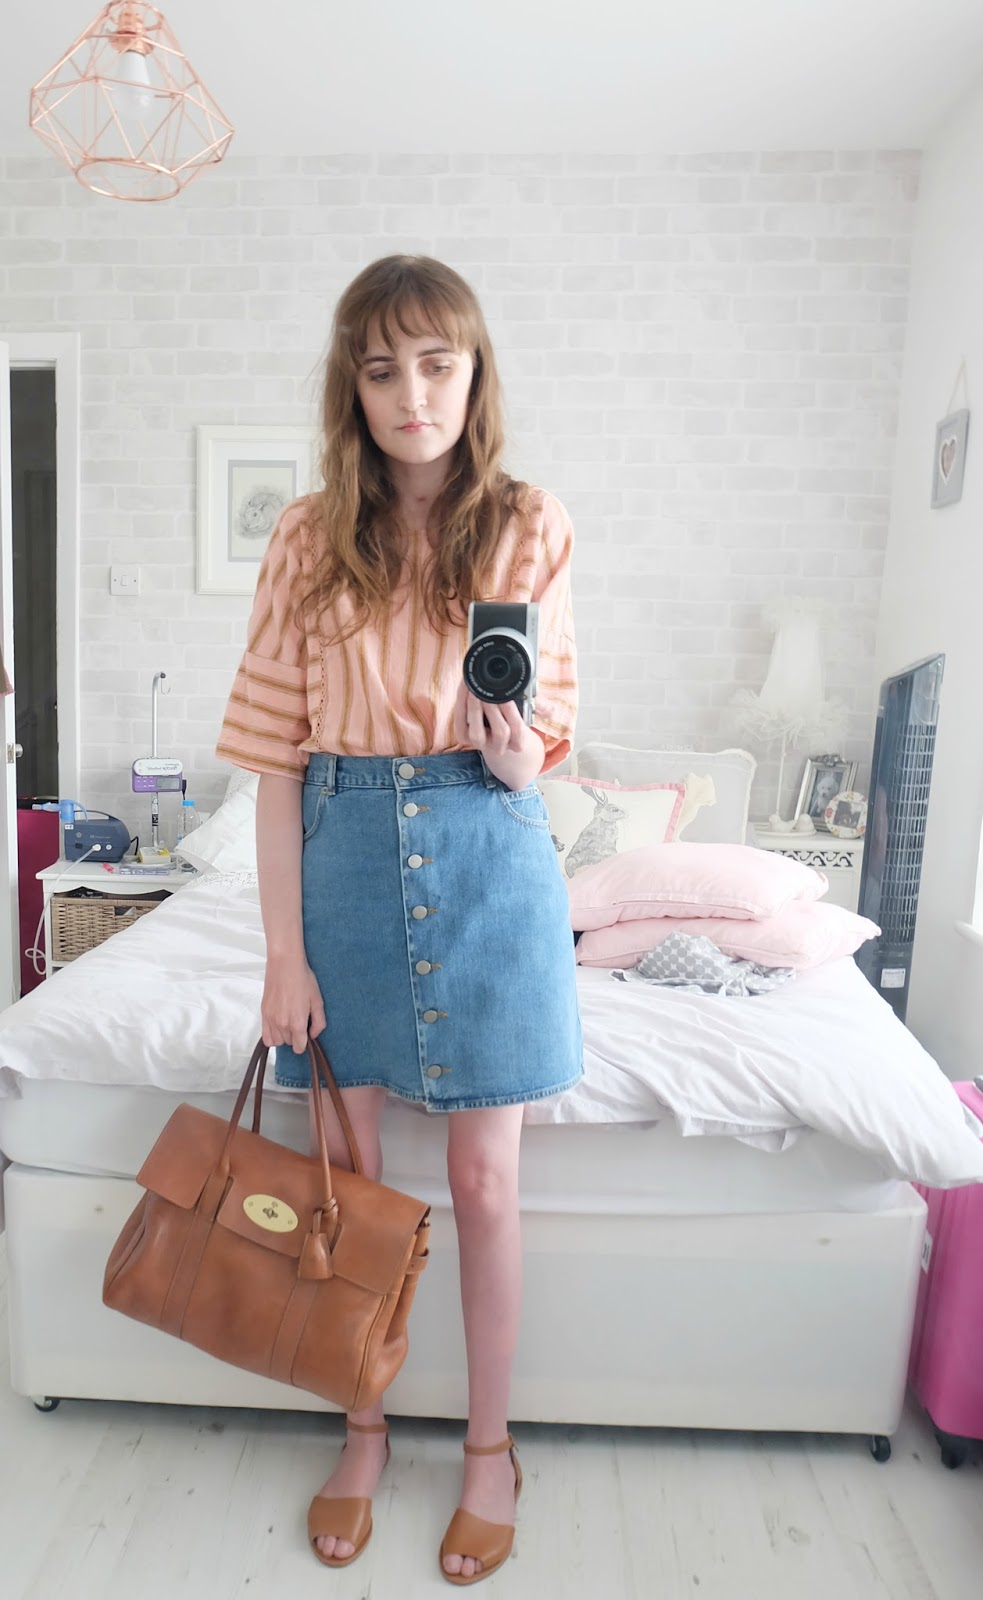 topshop stripe mix n match tee, aos denim dolly button through skirt, mulberry bayswater bag outfit, cystic fibrosis transplant blog uk, uk fashion blog, sick chick chic blog